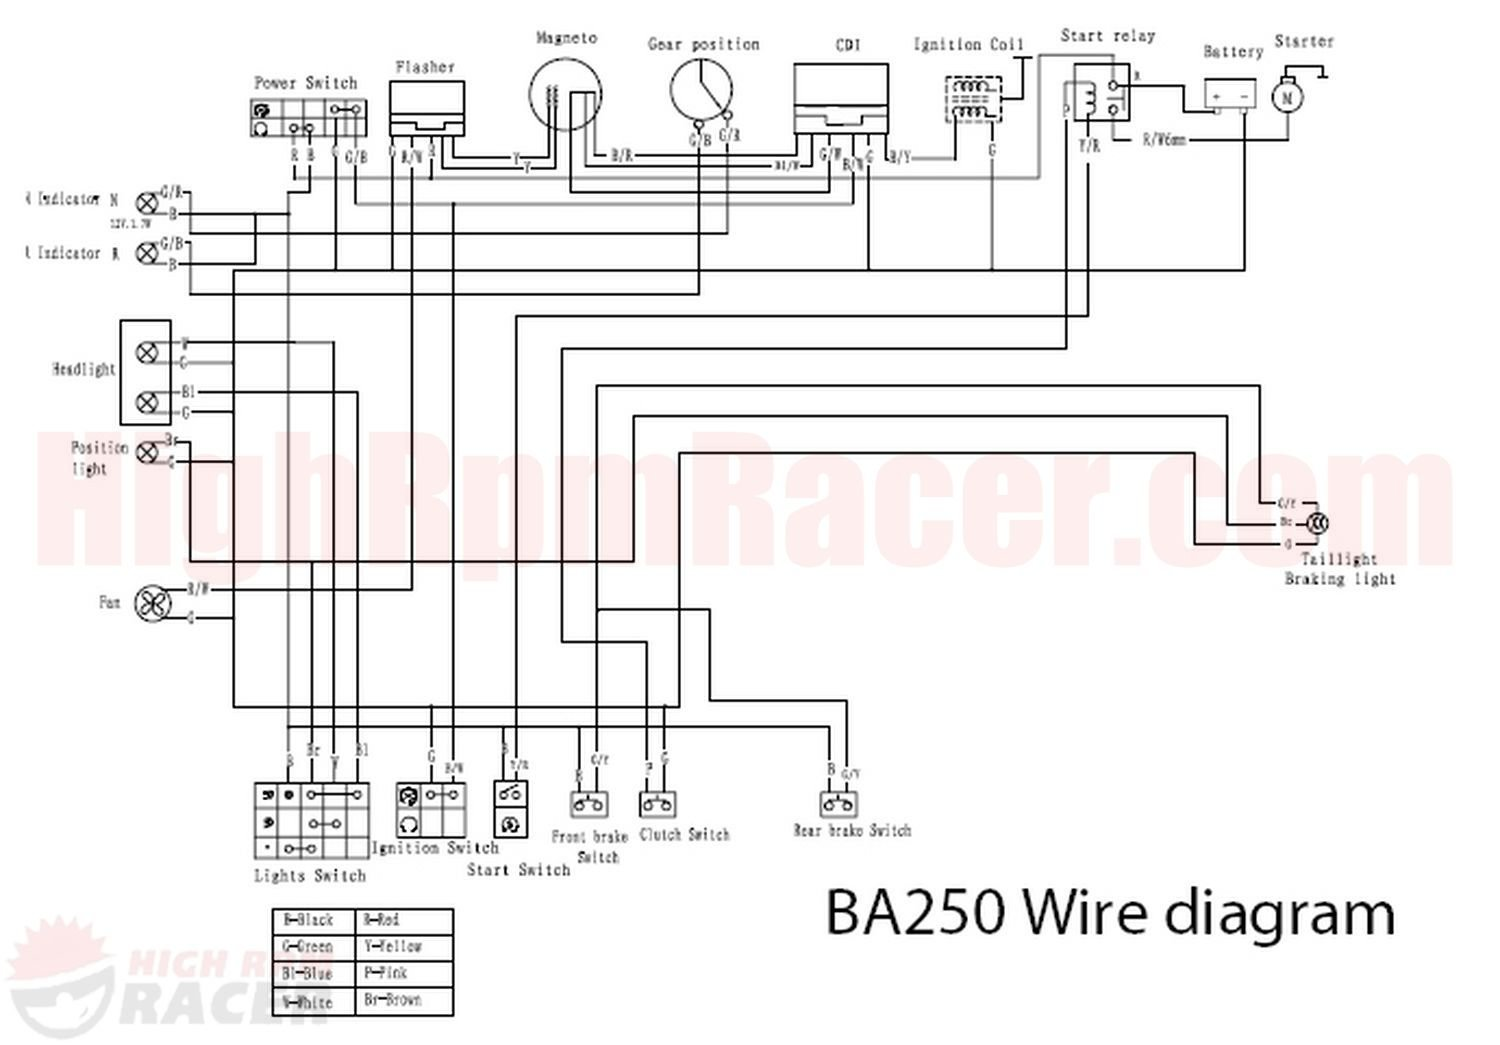 baja250_wd wiring diagram for chinese 110 atv the wiring diagram 1990 polaris trail boss 250 wiring diagram at edmiracle.co